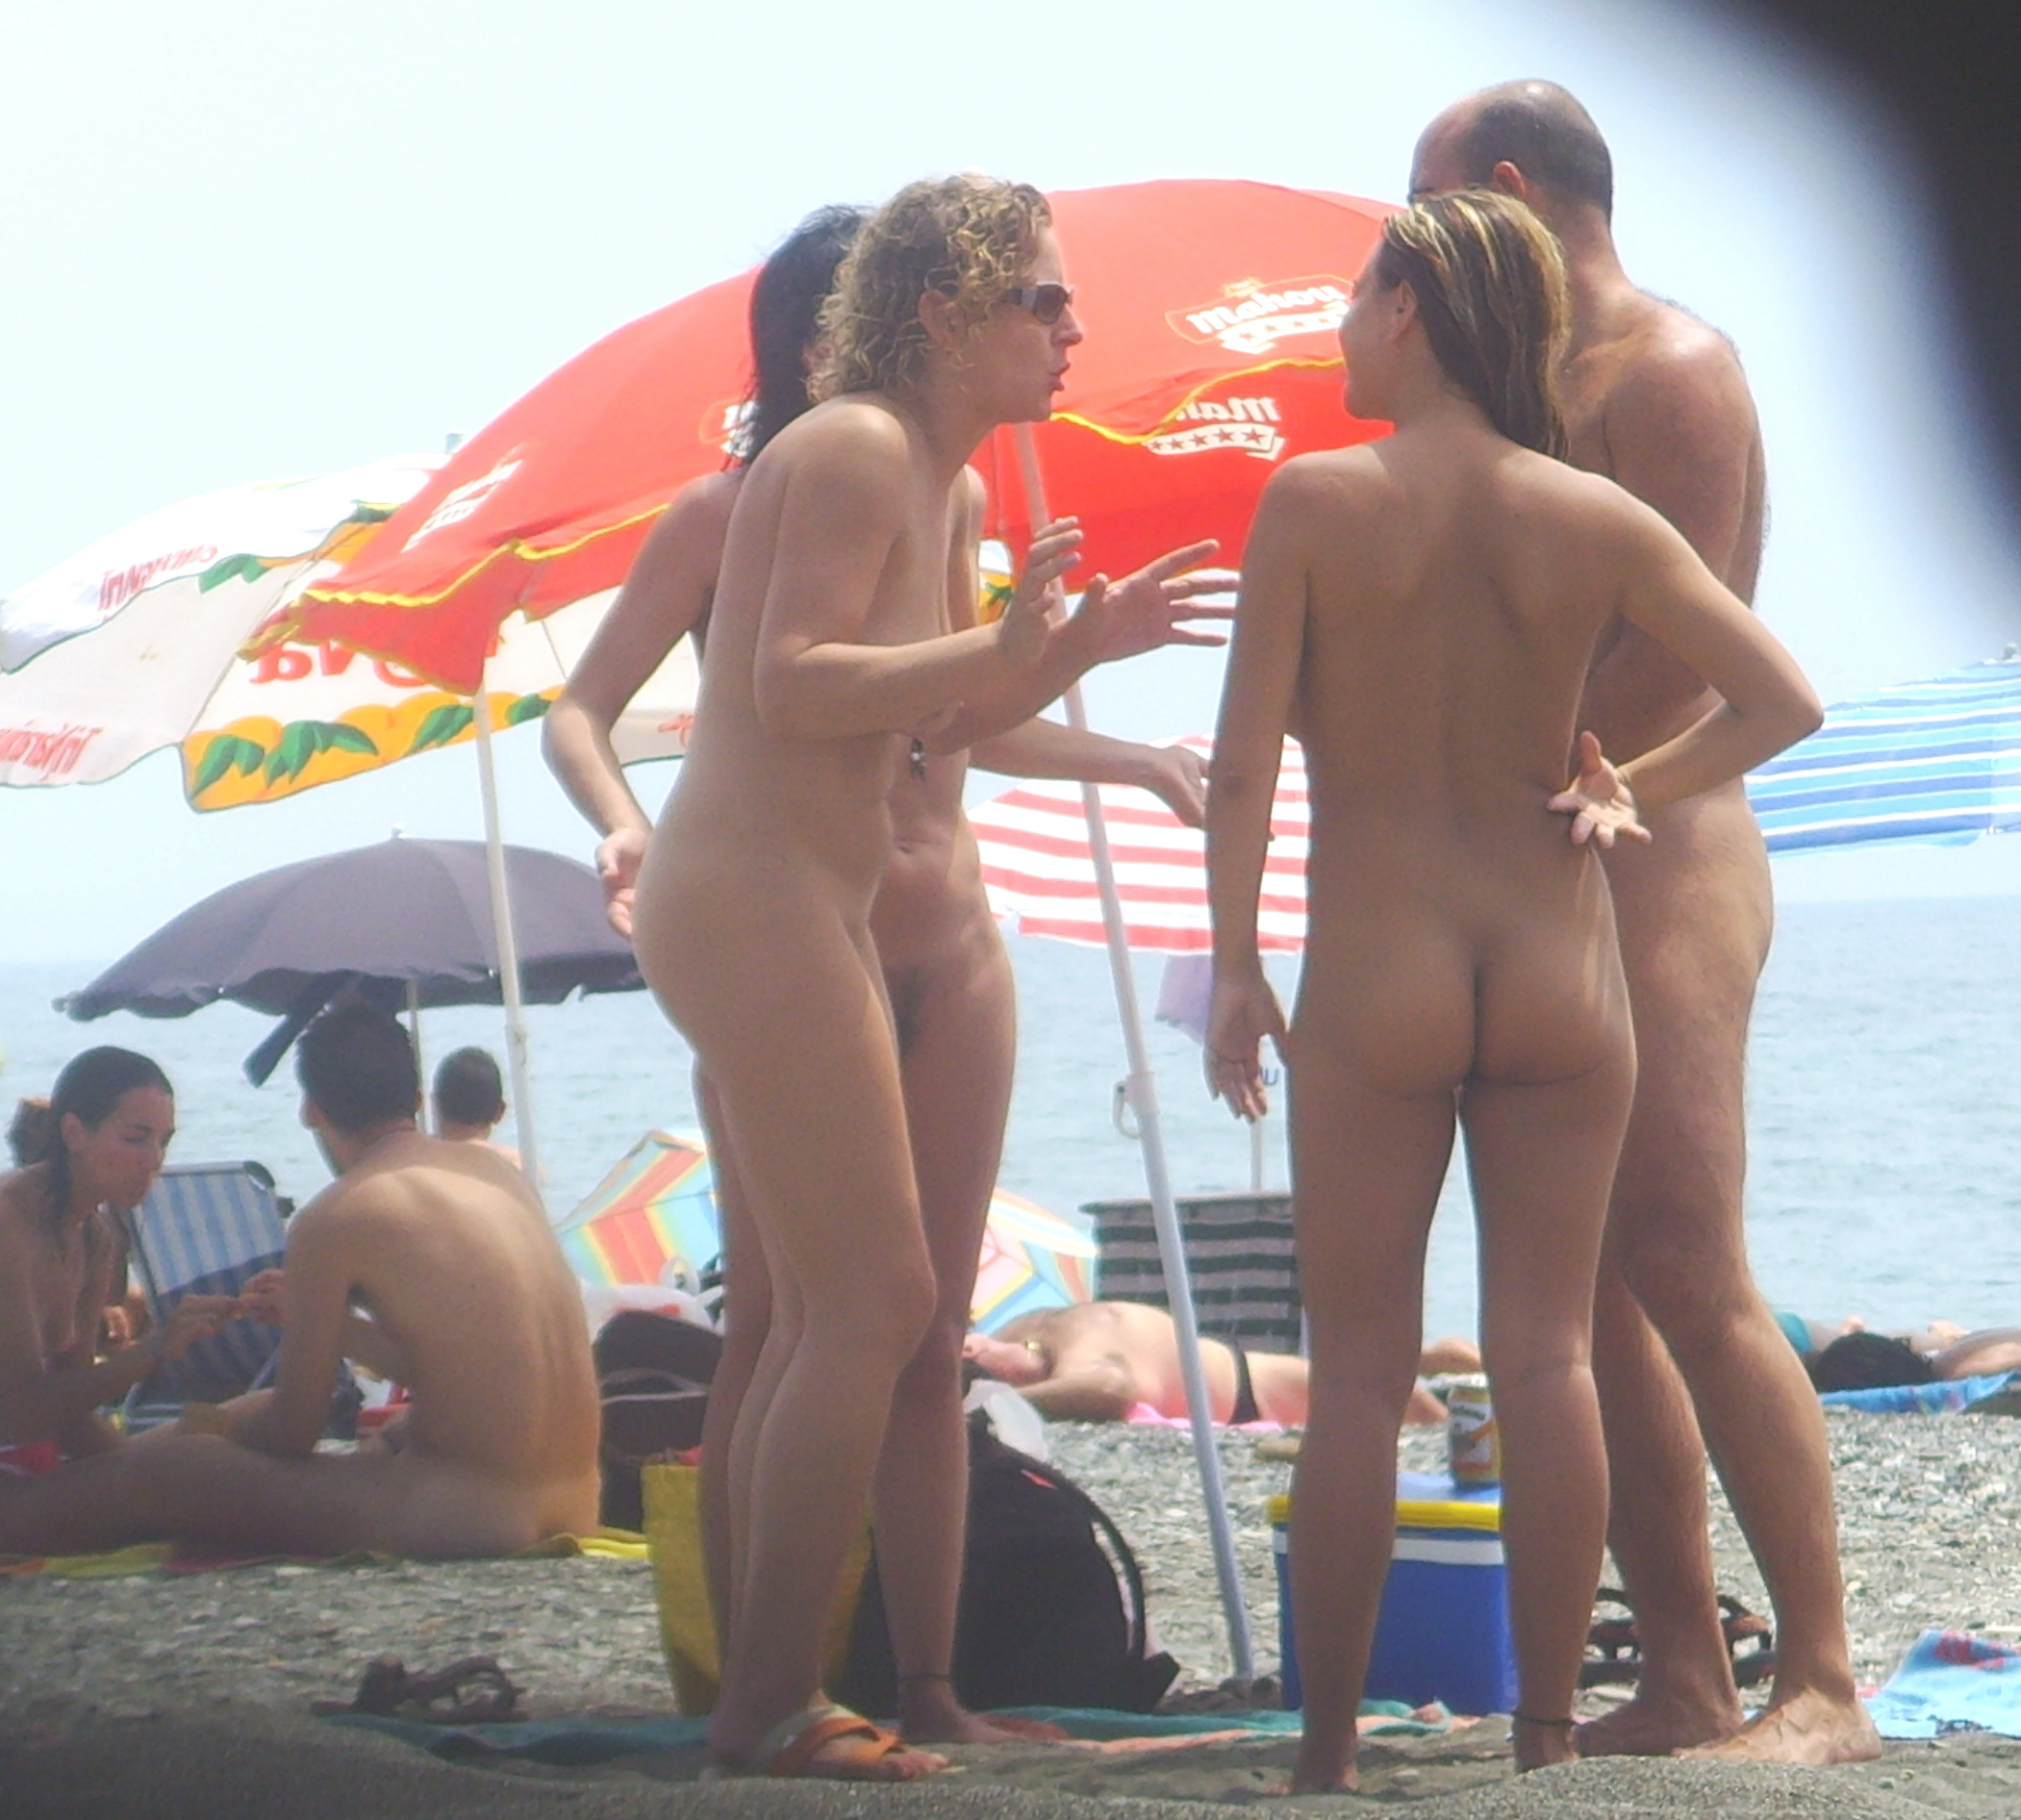 https://voyeurpapa.com/wp-content/uploads/2016/12/Nudists-family-nude-beach-3.jpg